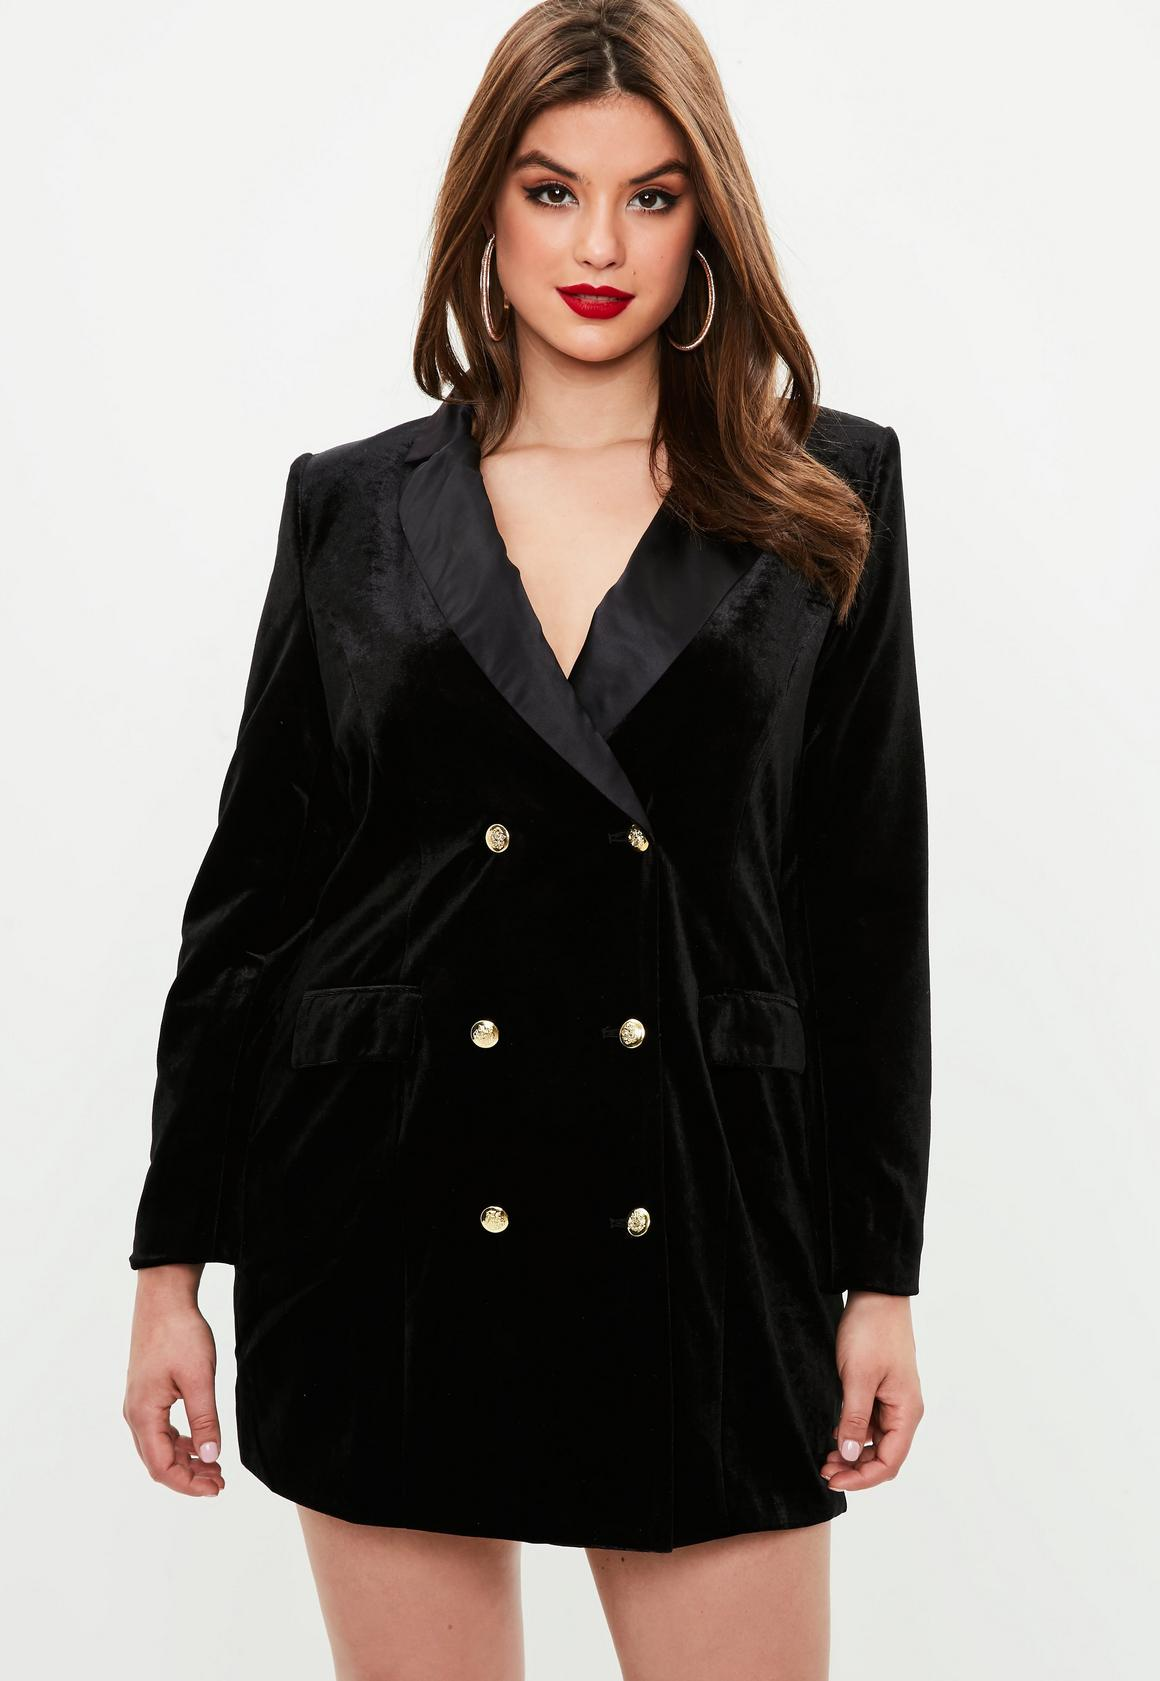 https://media.missguided.com/s/missguided/V9773609_set/1/curve-black-velvet-tuxedo-dress.jpg?$product-page__zoom--1x$